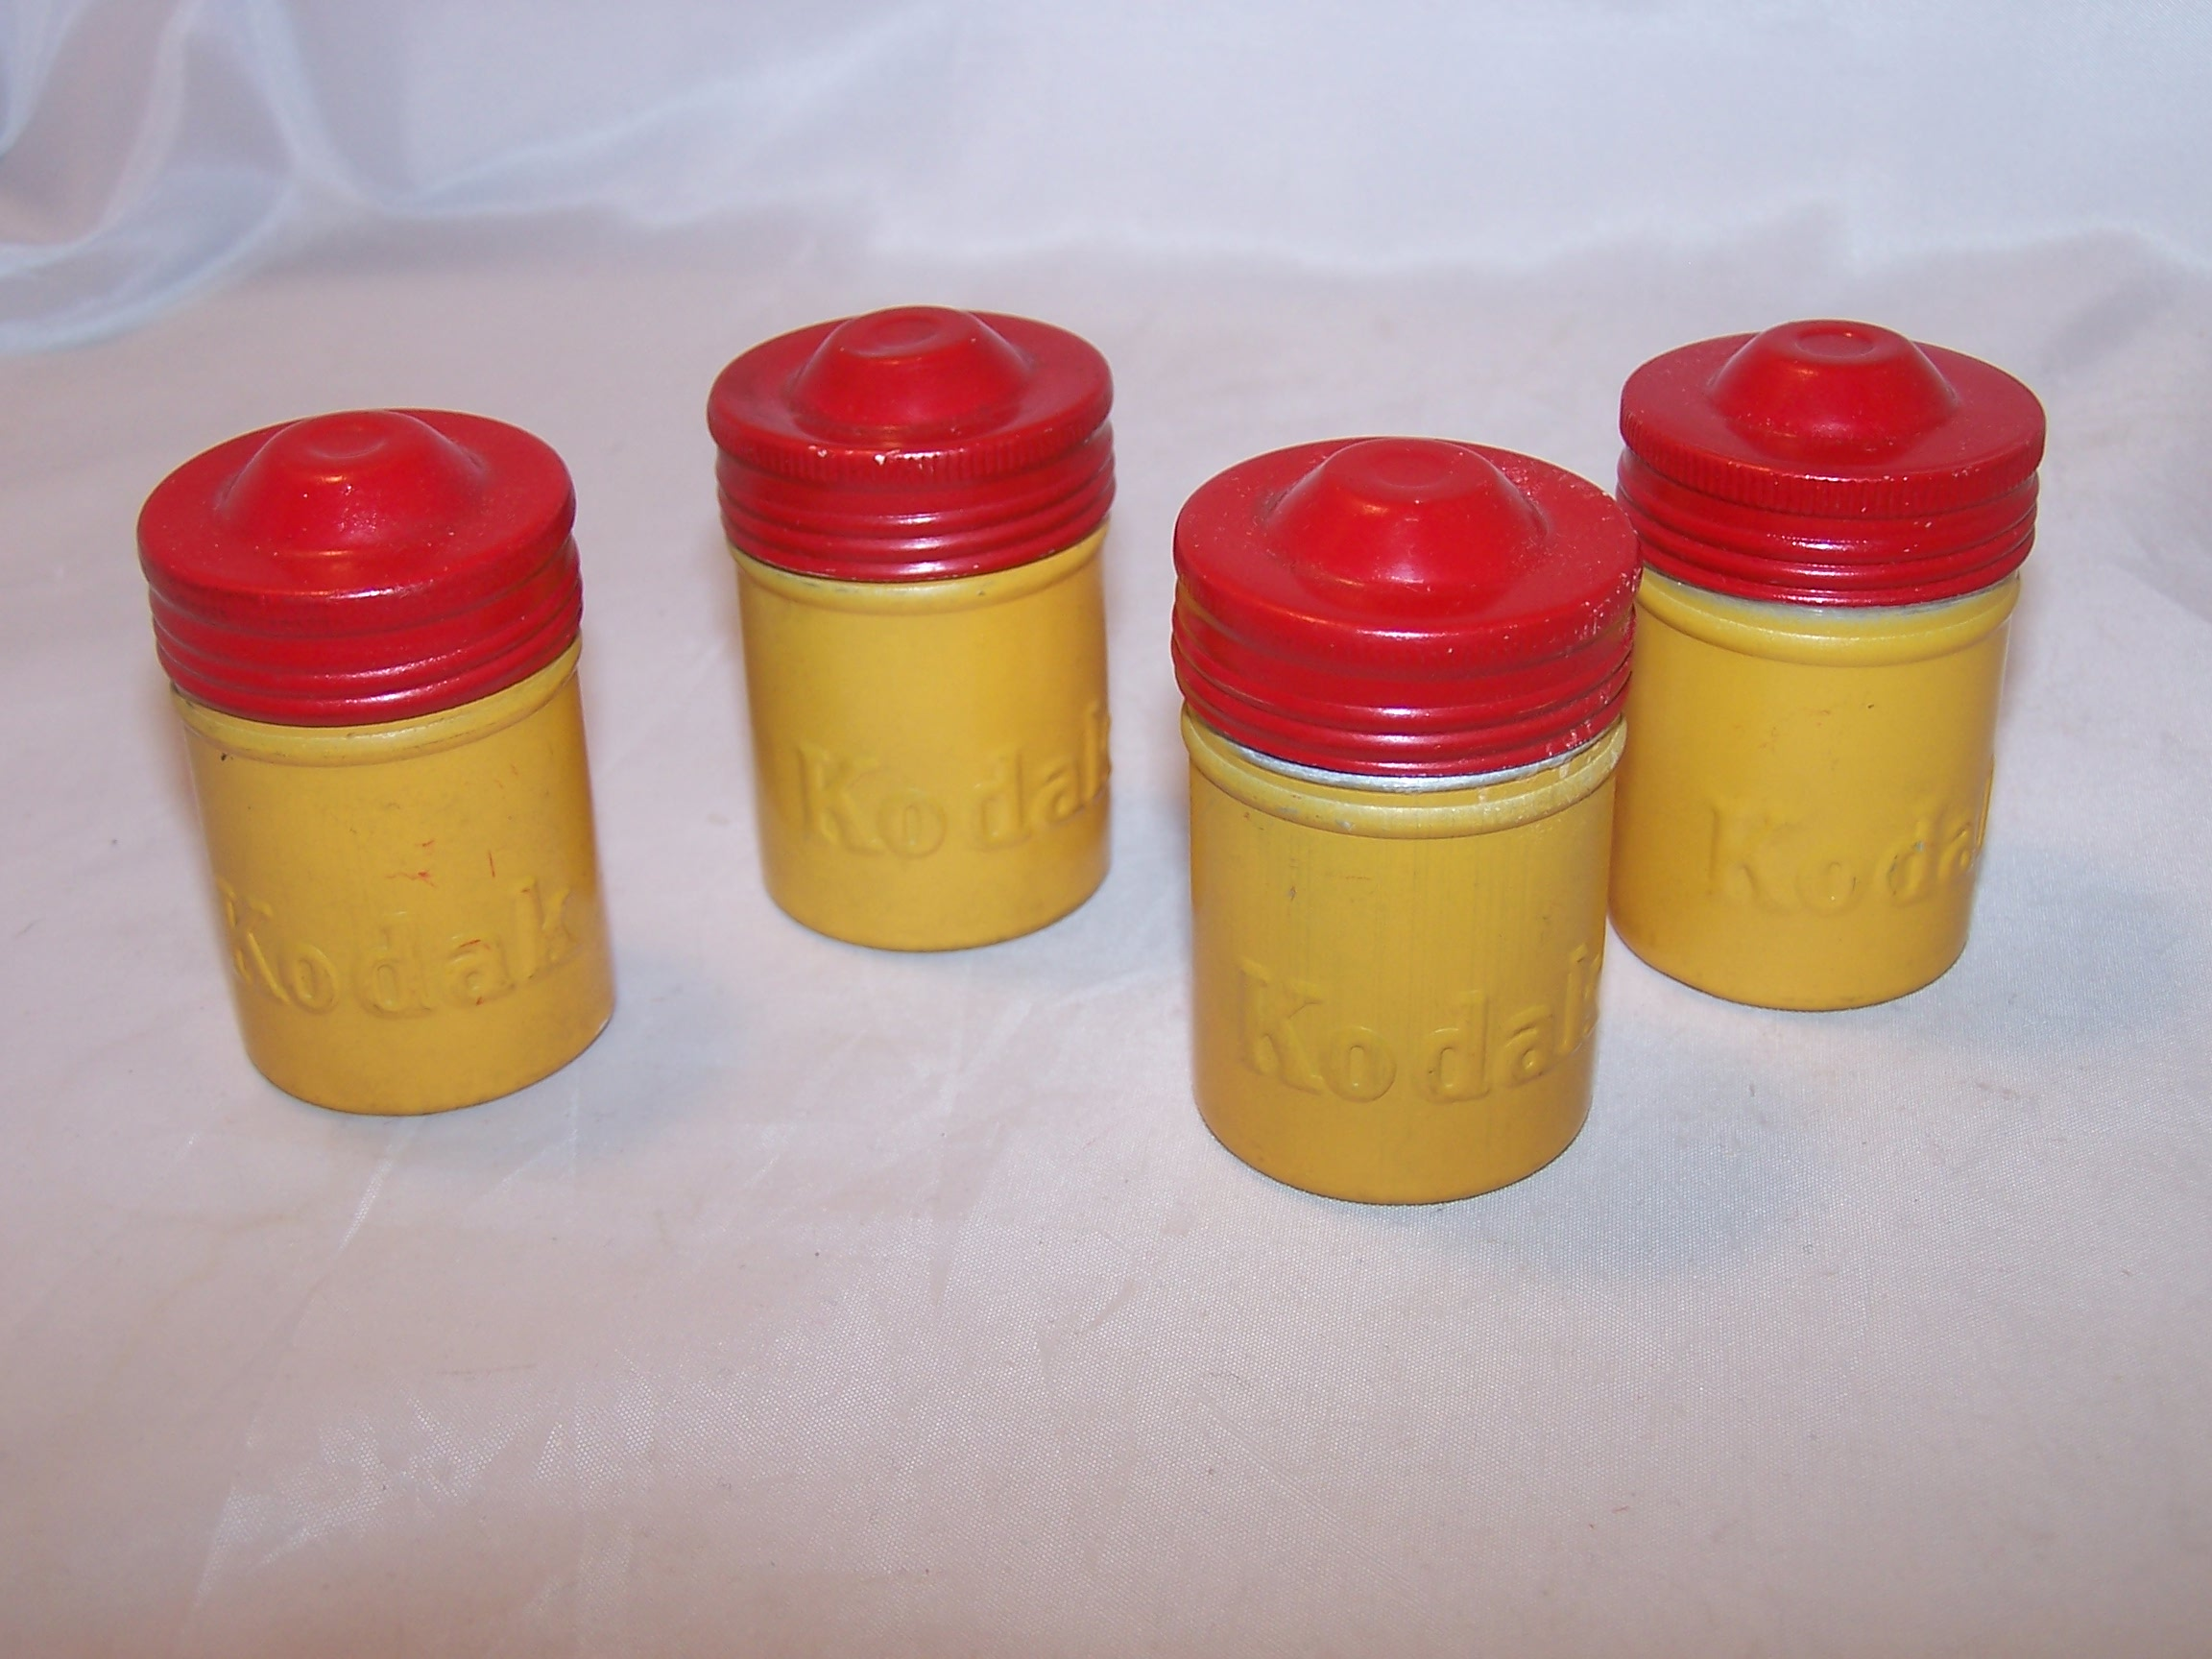 Kodak Red and Gold Film Canister, Vintage, Geo Caching